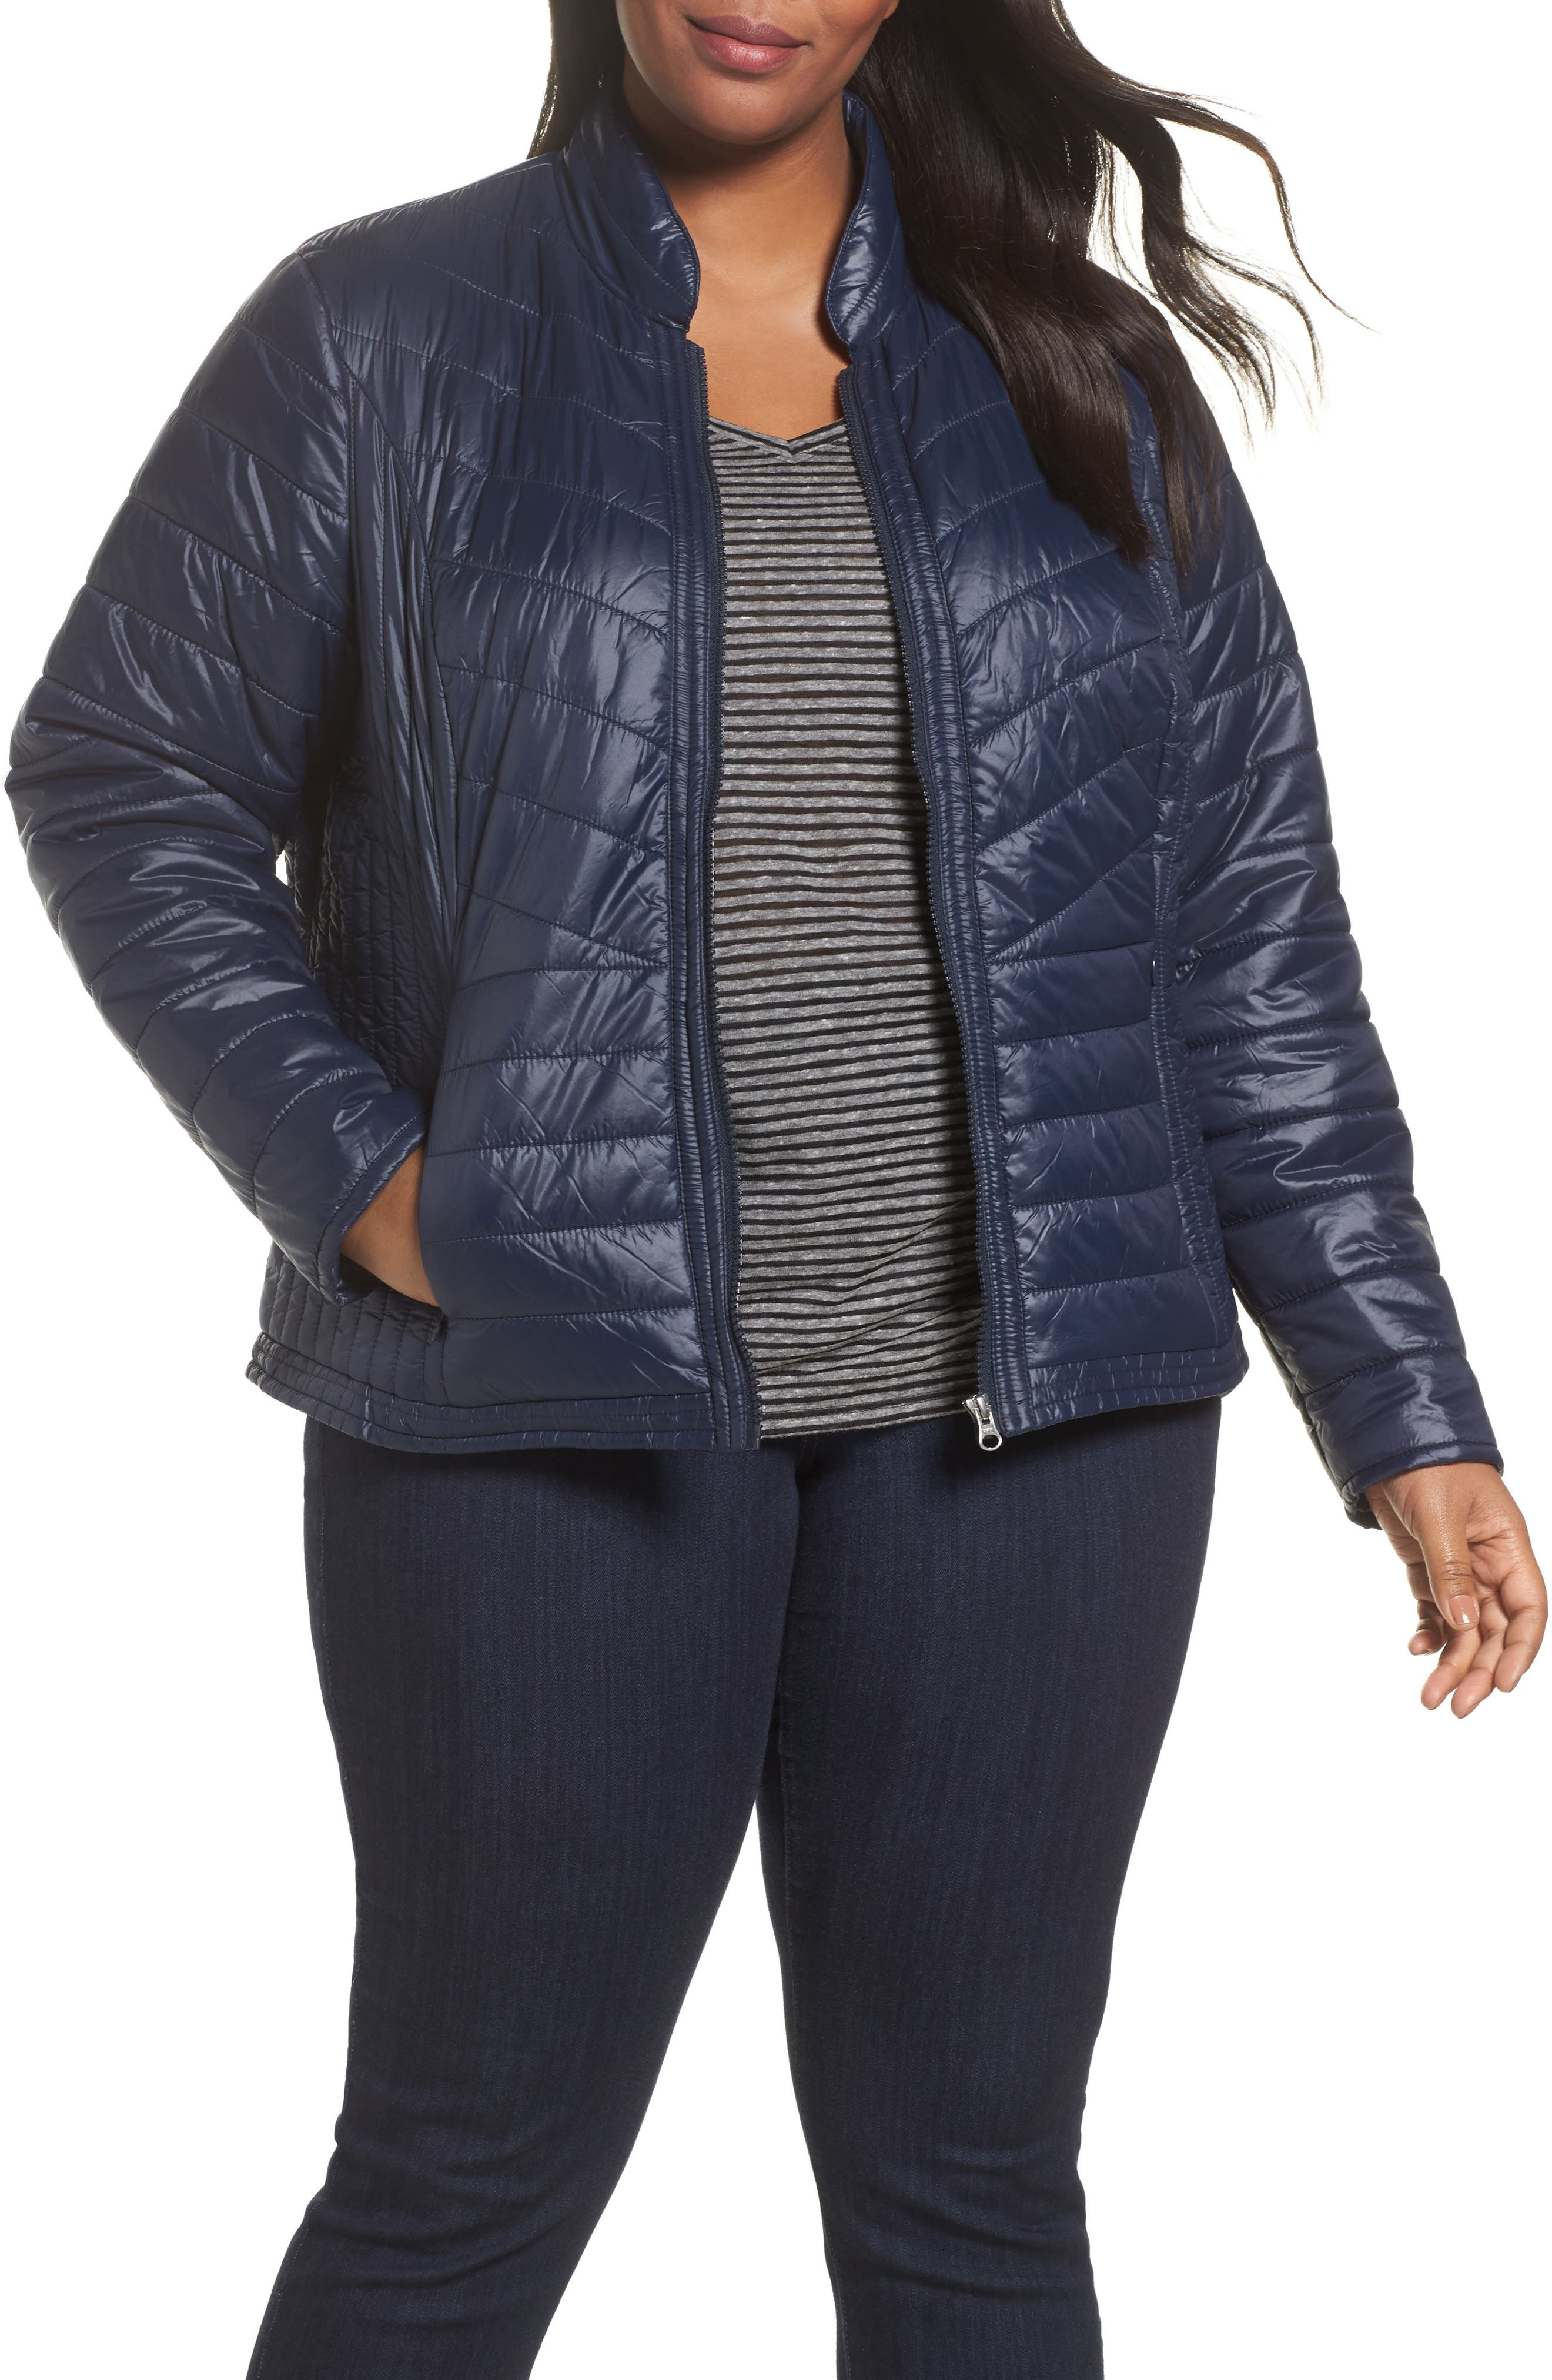 Twisted Quilted Puffer Jacket,                         Main,                         color, Navy Blazer